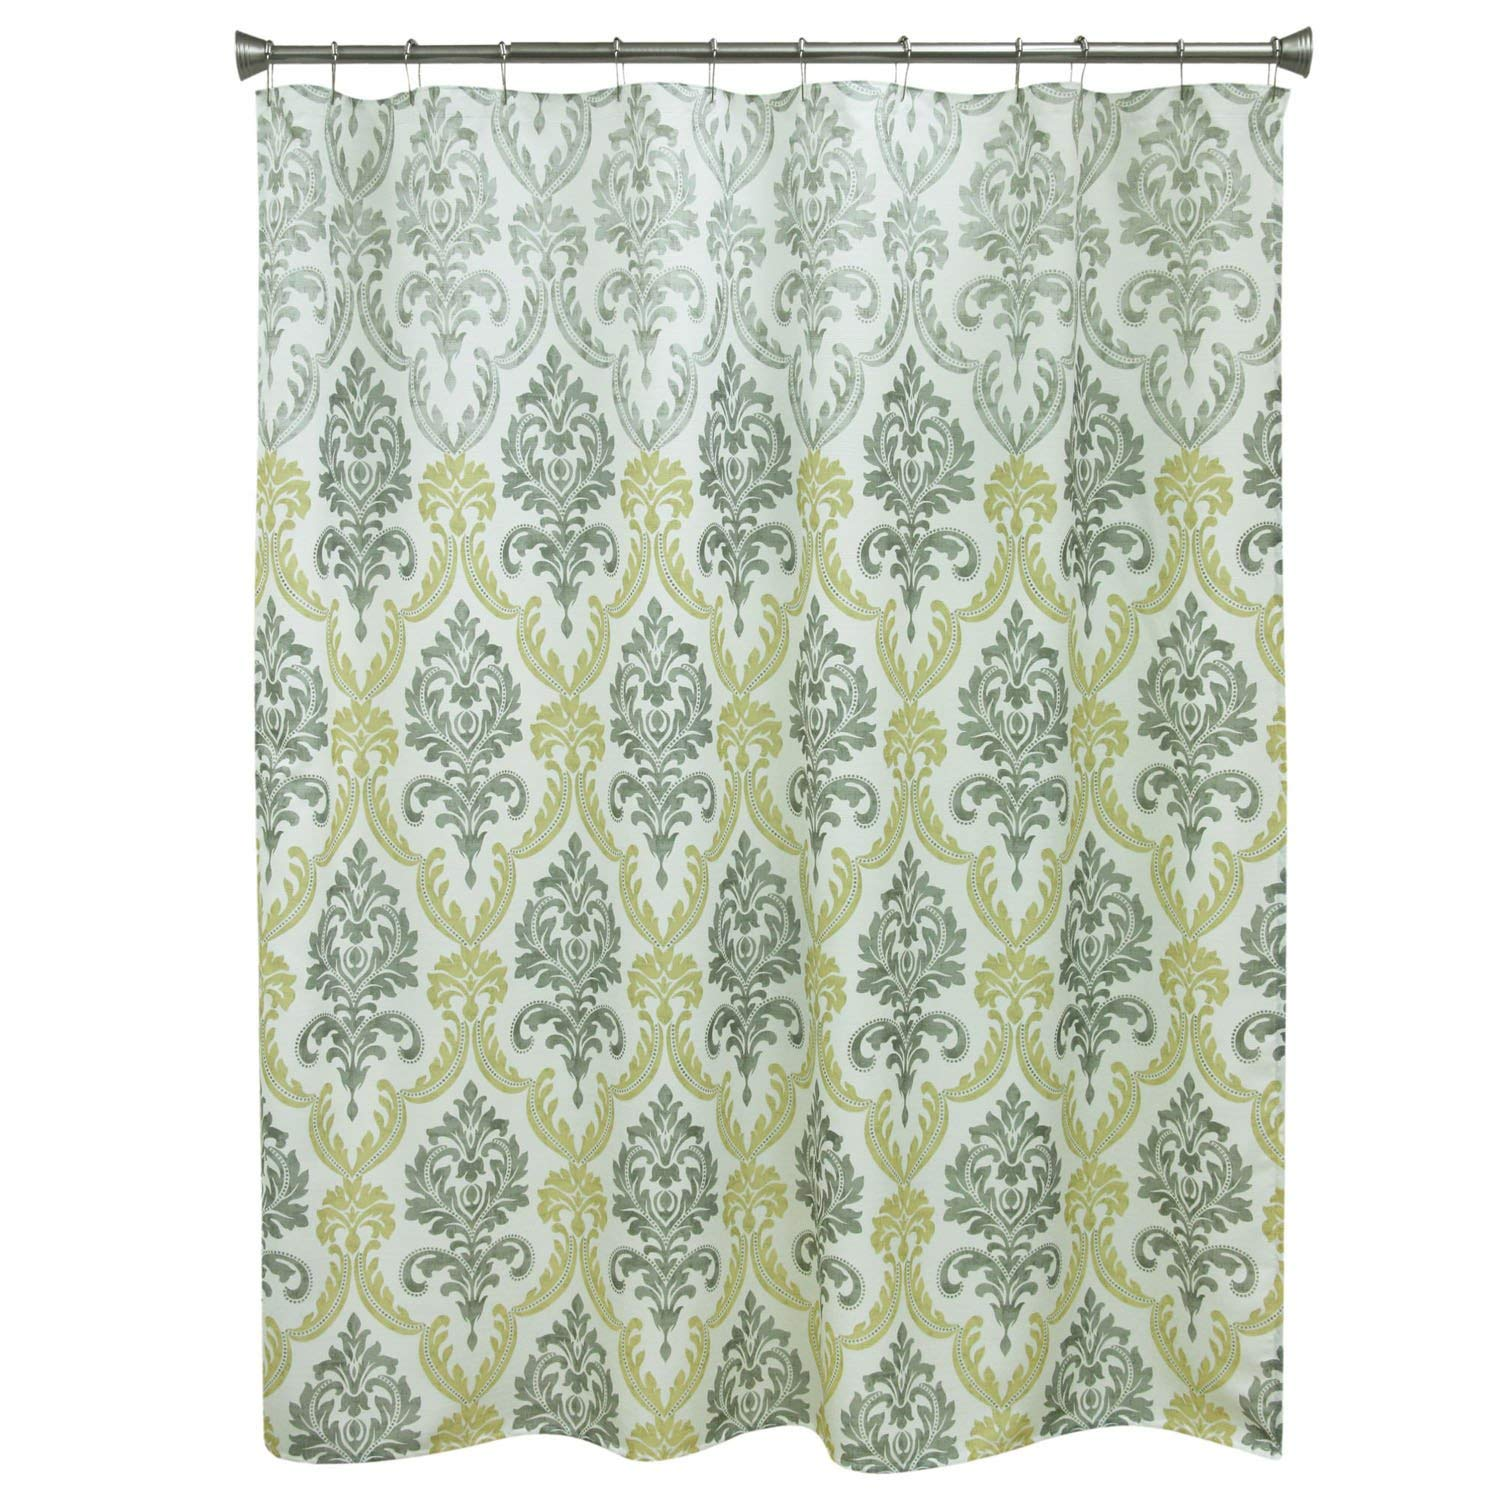 Get Quotations Bacova Guild 10784 Portico Yellow Damask Shower Curtain